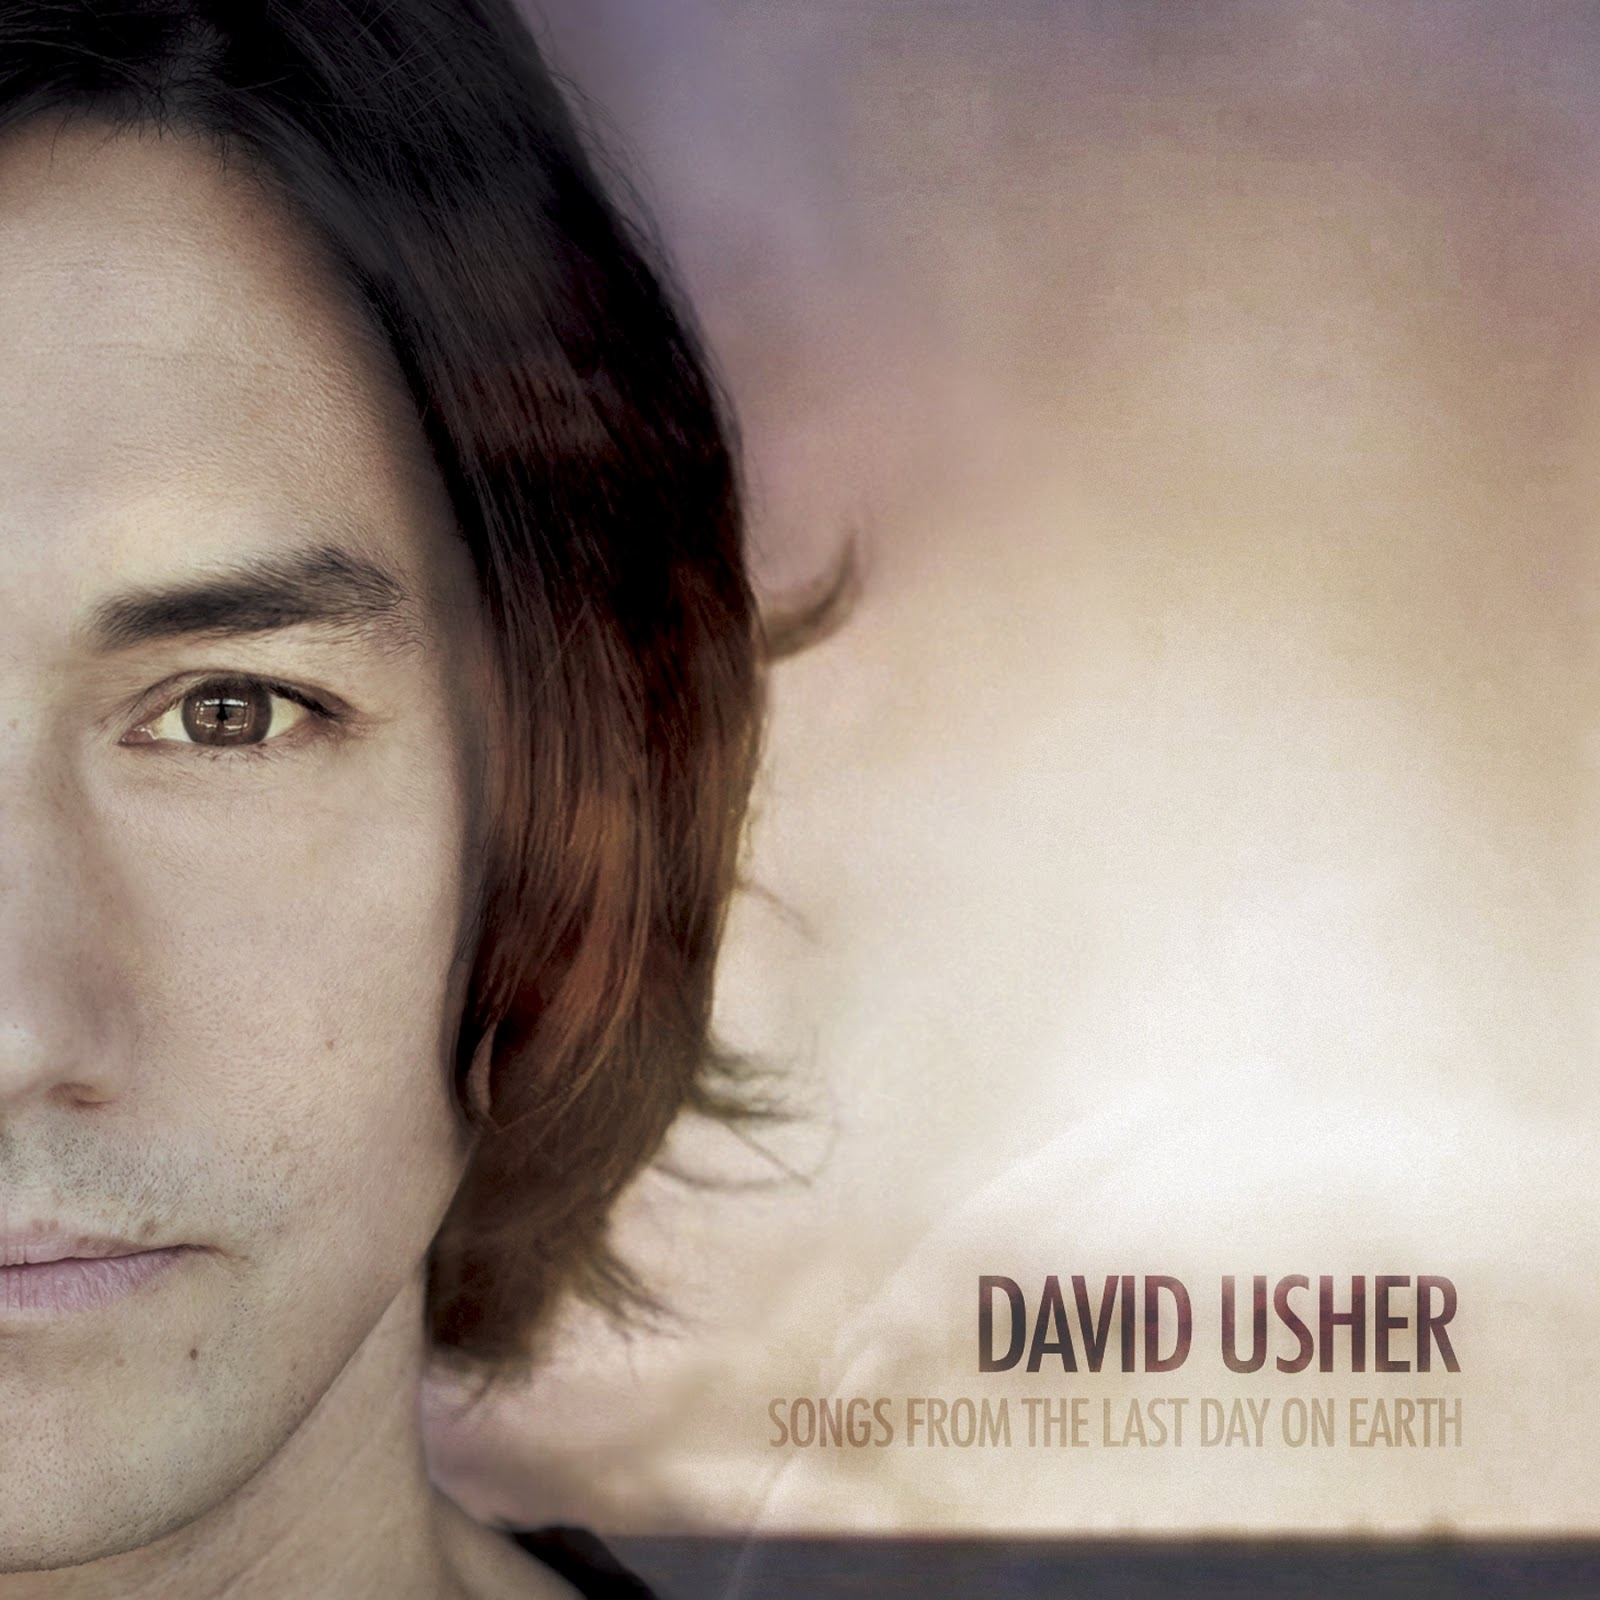 http://4.bp.blogspot.com/-TwCa31EPu-s/UFoe0KOb8eI/AAAAAAAAPOs/c4MRnsN7o7I/s1600/david_usher_songs_from_the_last_day_on_earth.jpg